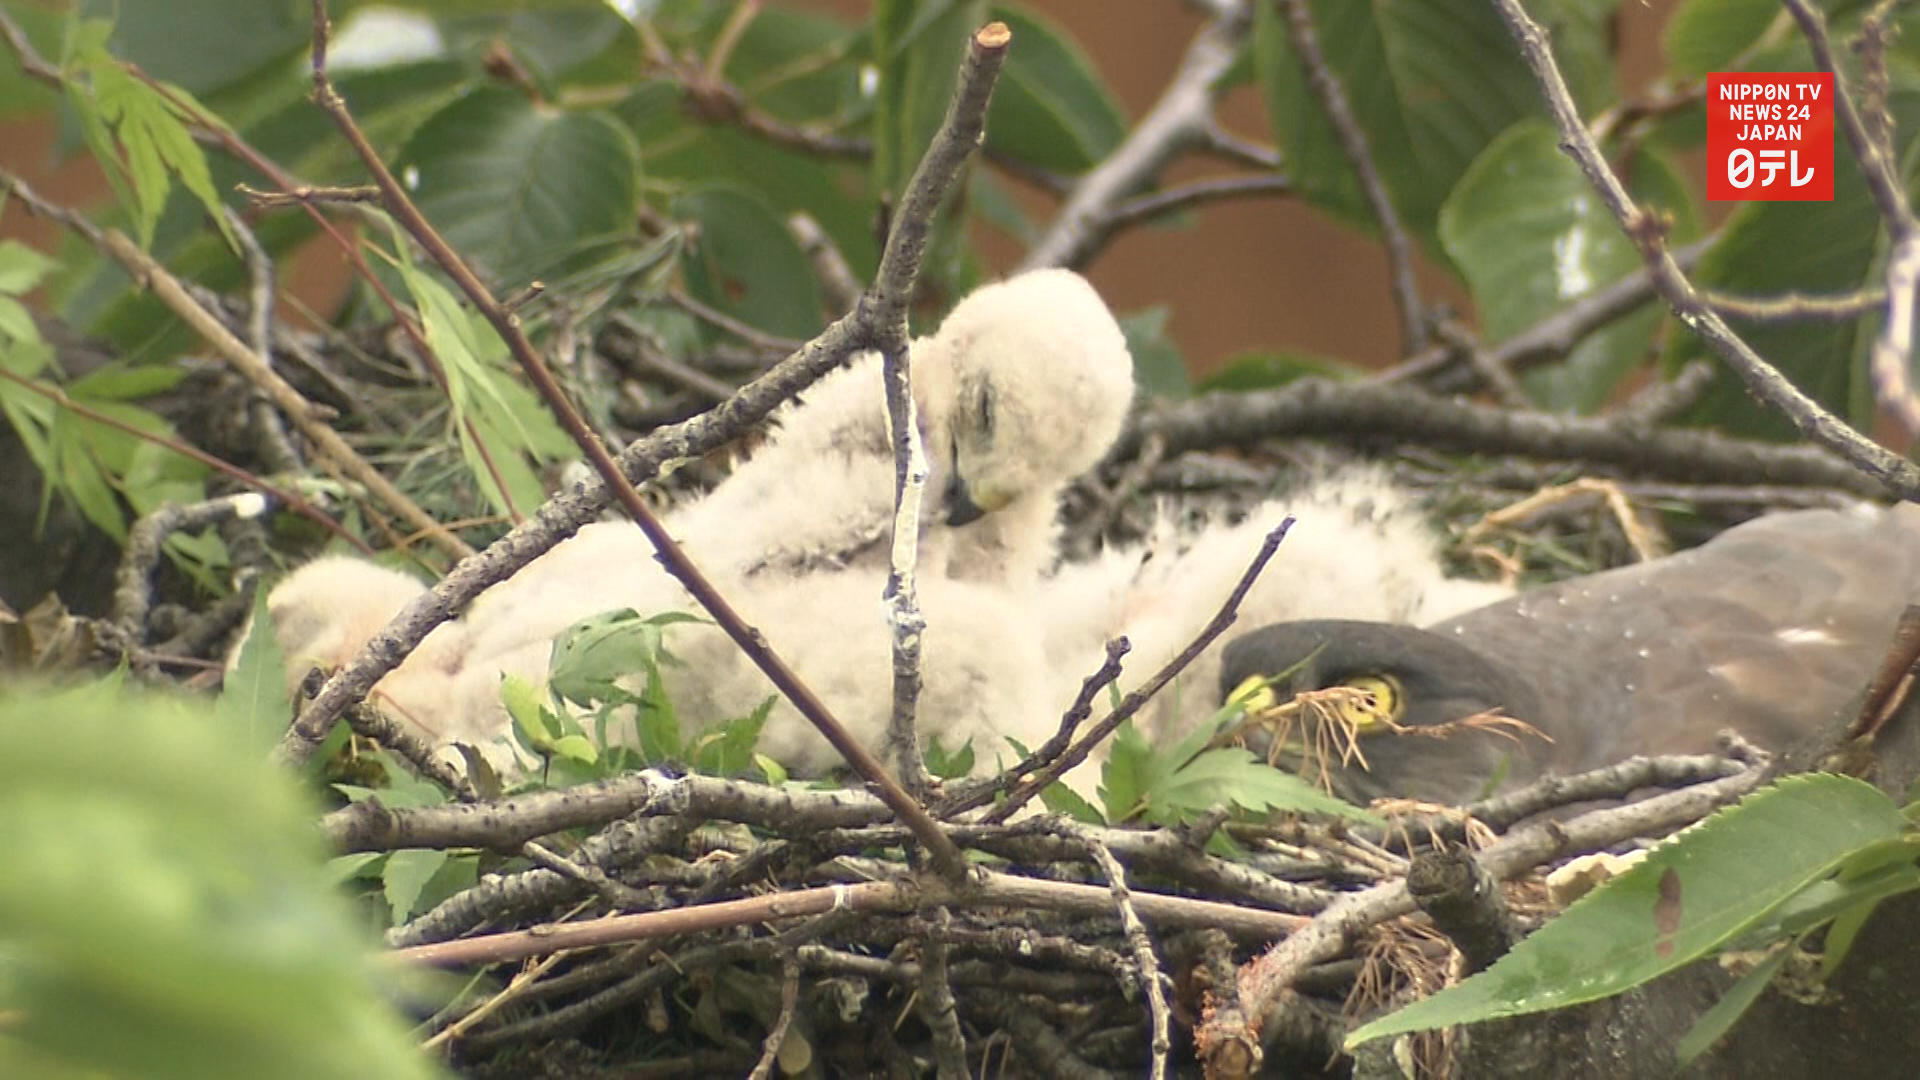 Sparrowhawk chicks brighten mood at elementary school